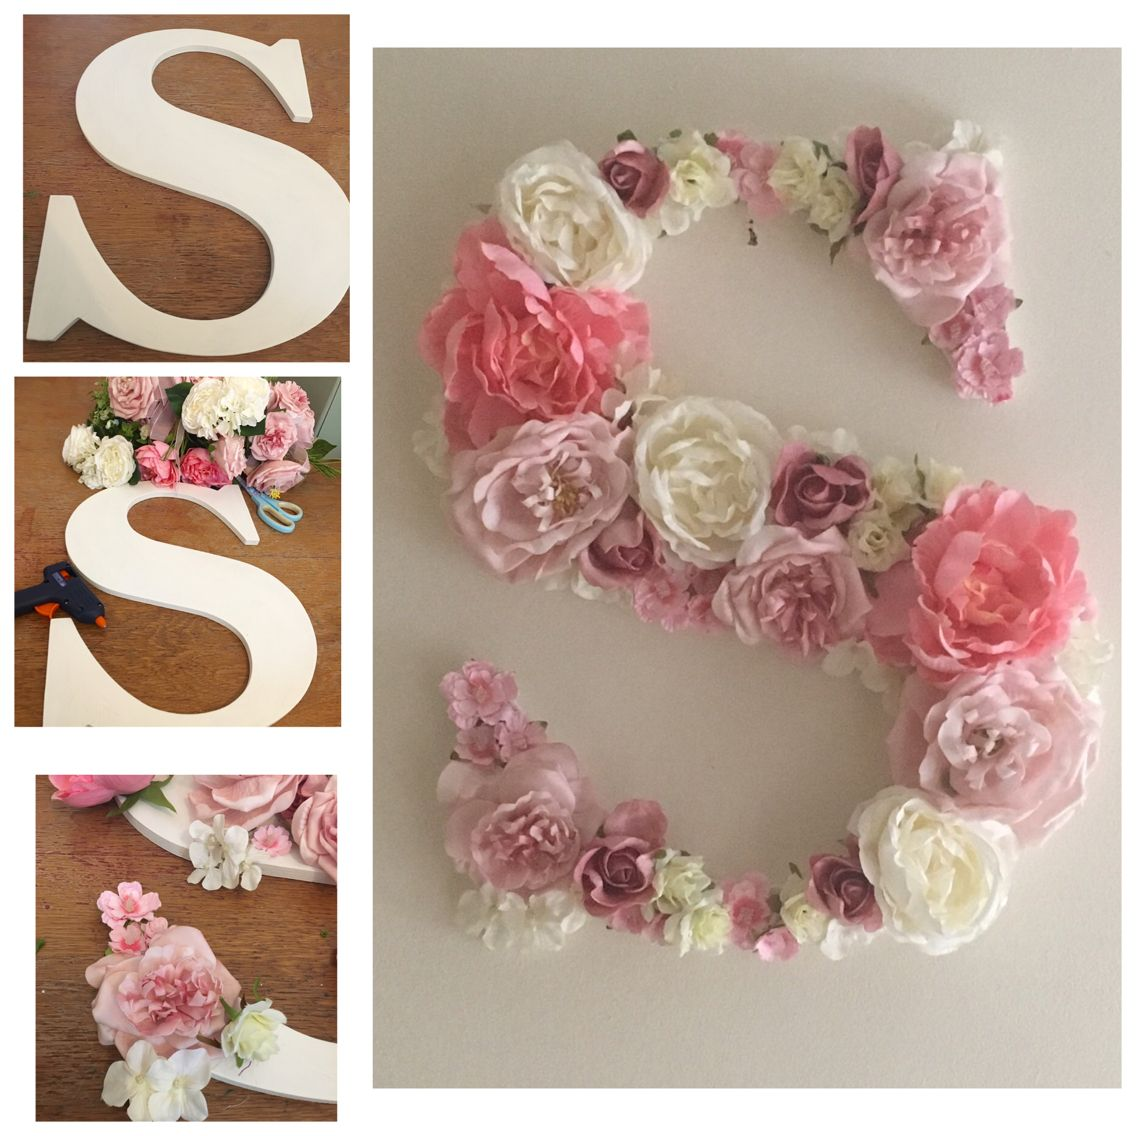 Wooden s letter decorated with silk flowers wooden sign for Decorative flowers for crafts